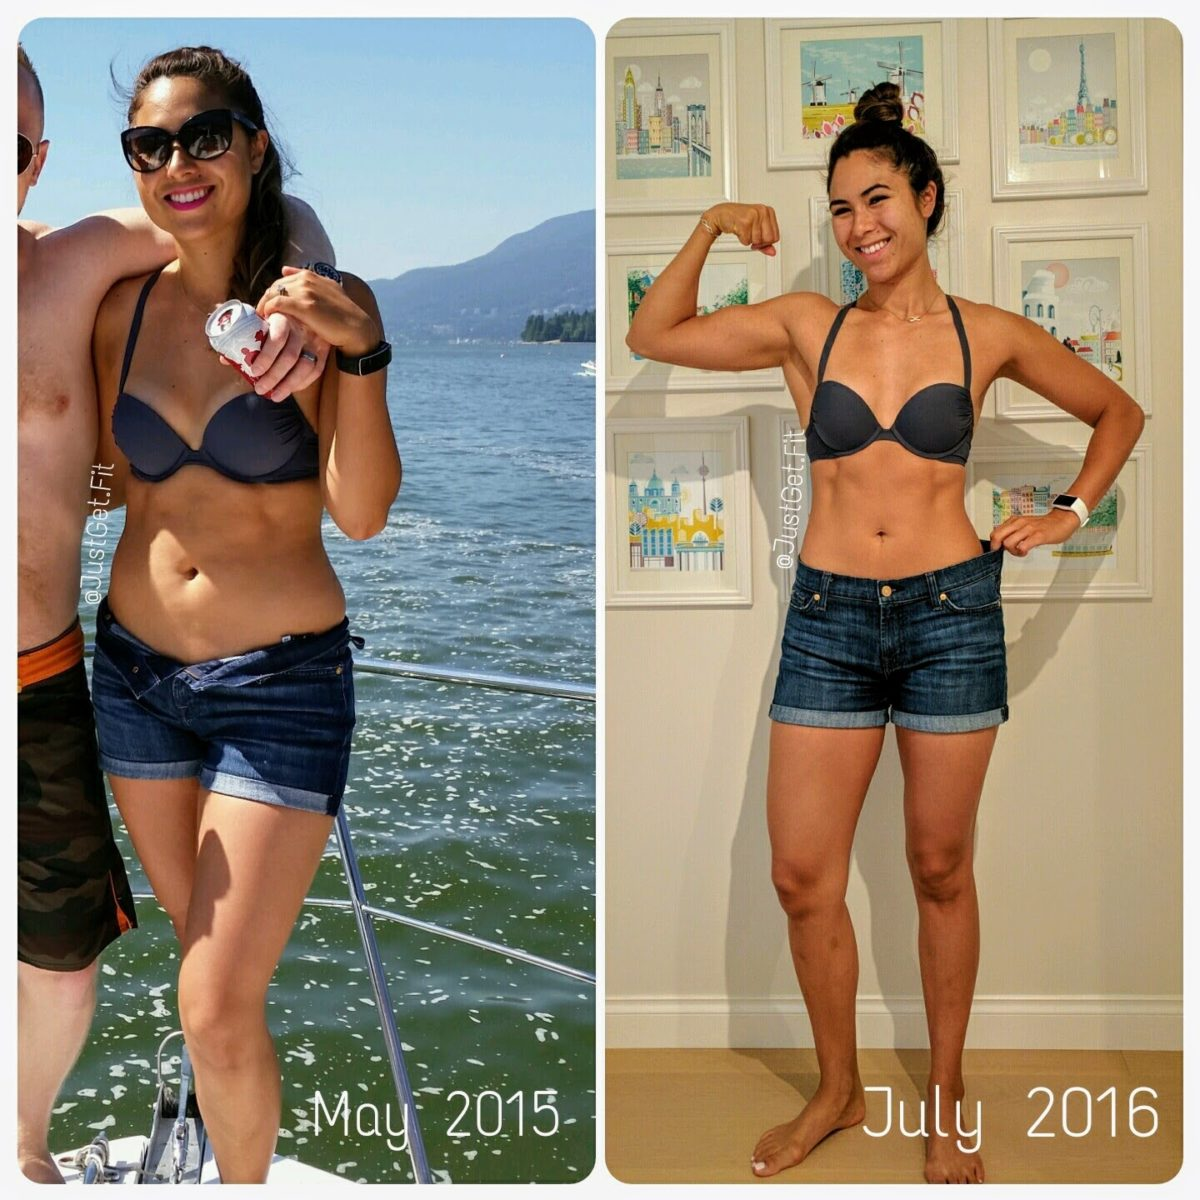 True garcinia cambogia price in the philippines image 7